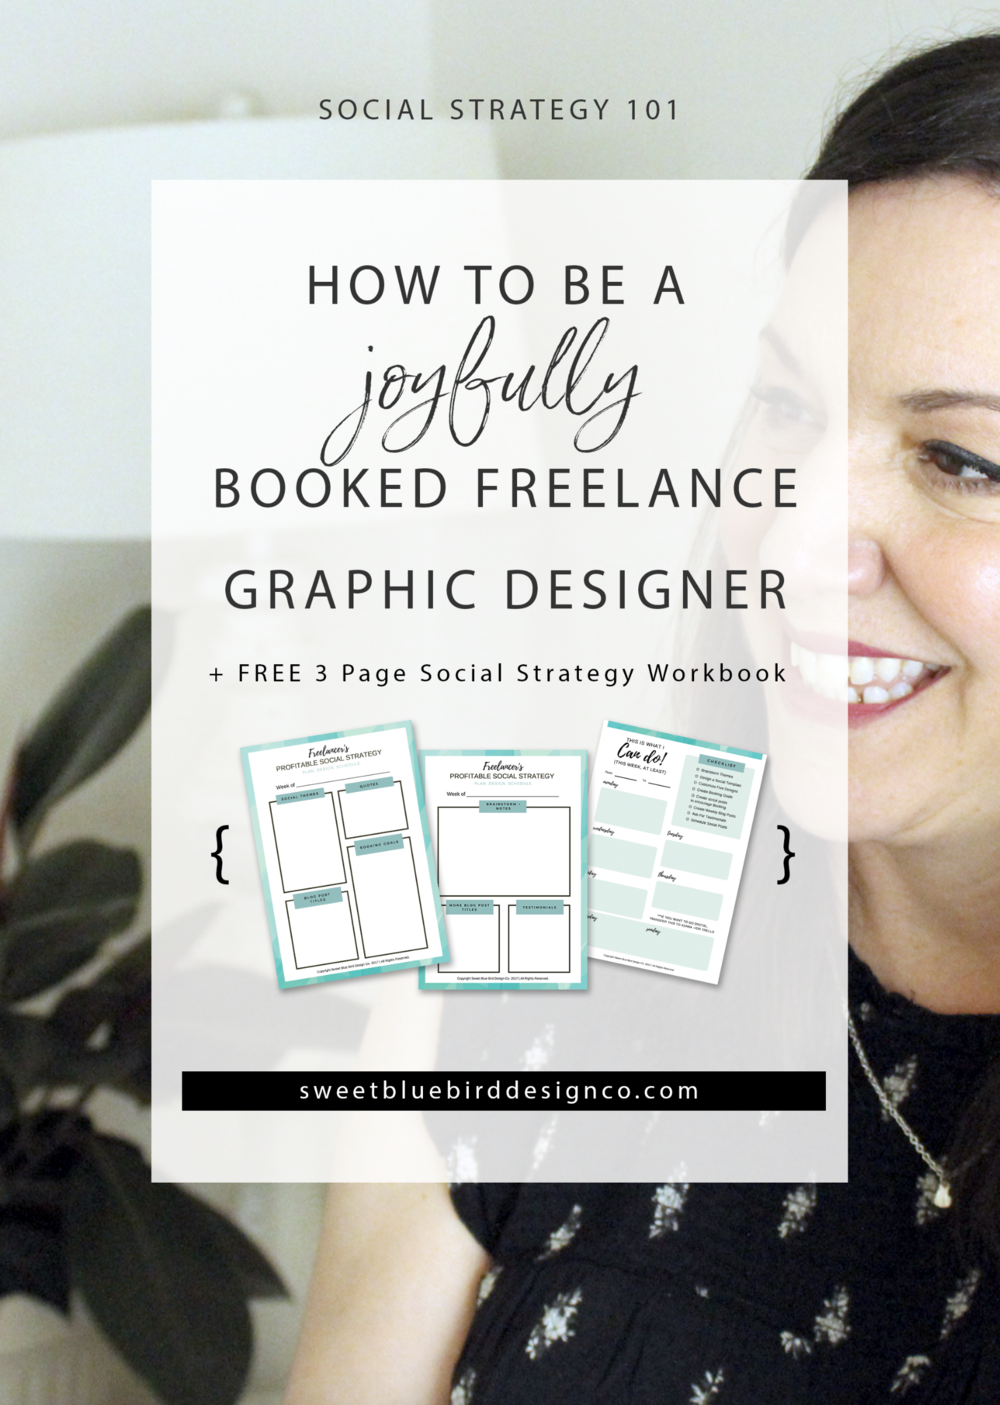 How-to-be-a-joyfully-booked-freelance-graphic-designer